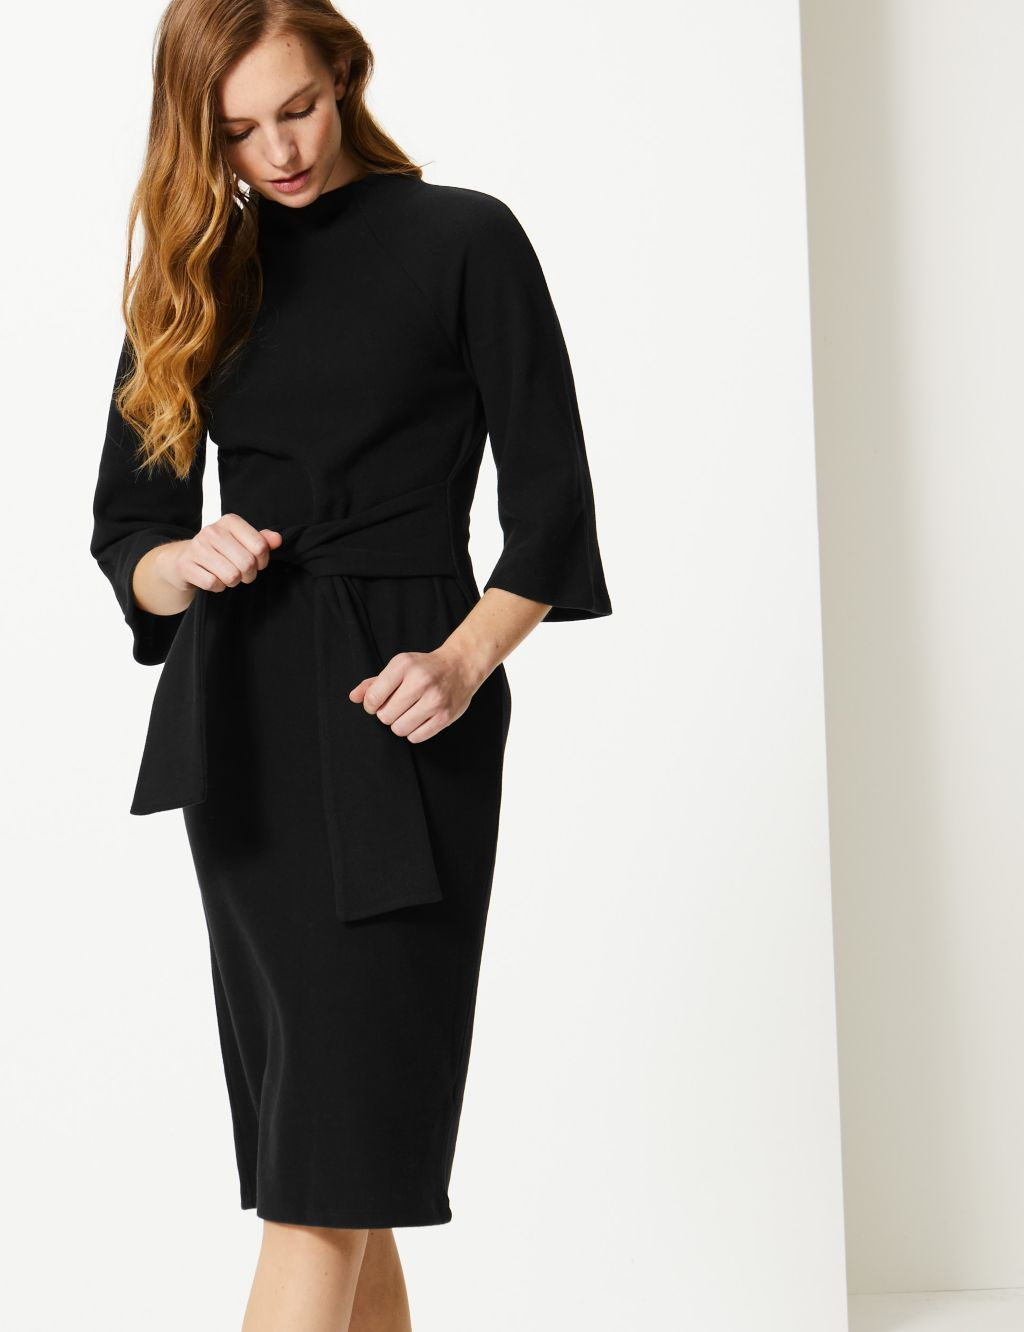 Tie Front 3 4 Sleeve Shift Dress M S Collection M S Long Sleeve Shift Dress Shift Dress Dresses [ 1332 x 1024 Pixel ]